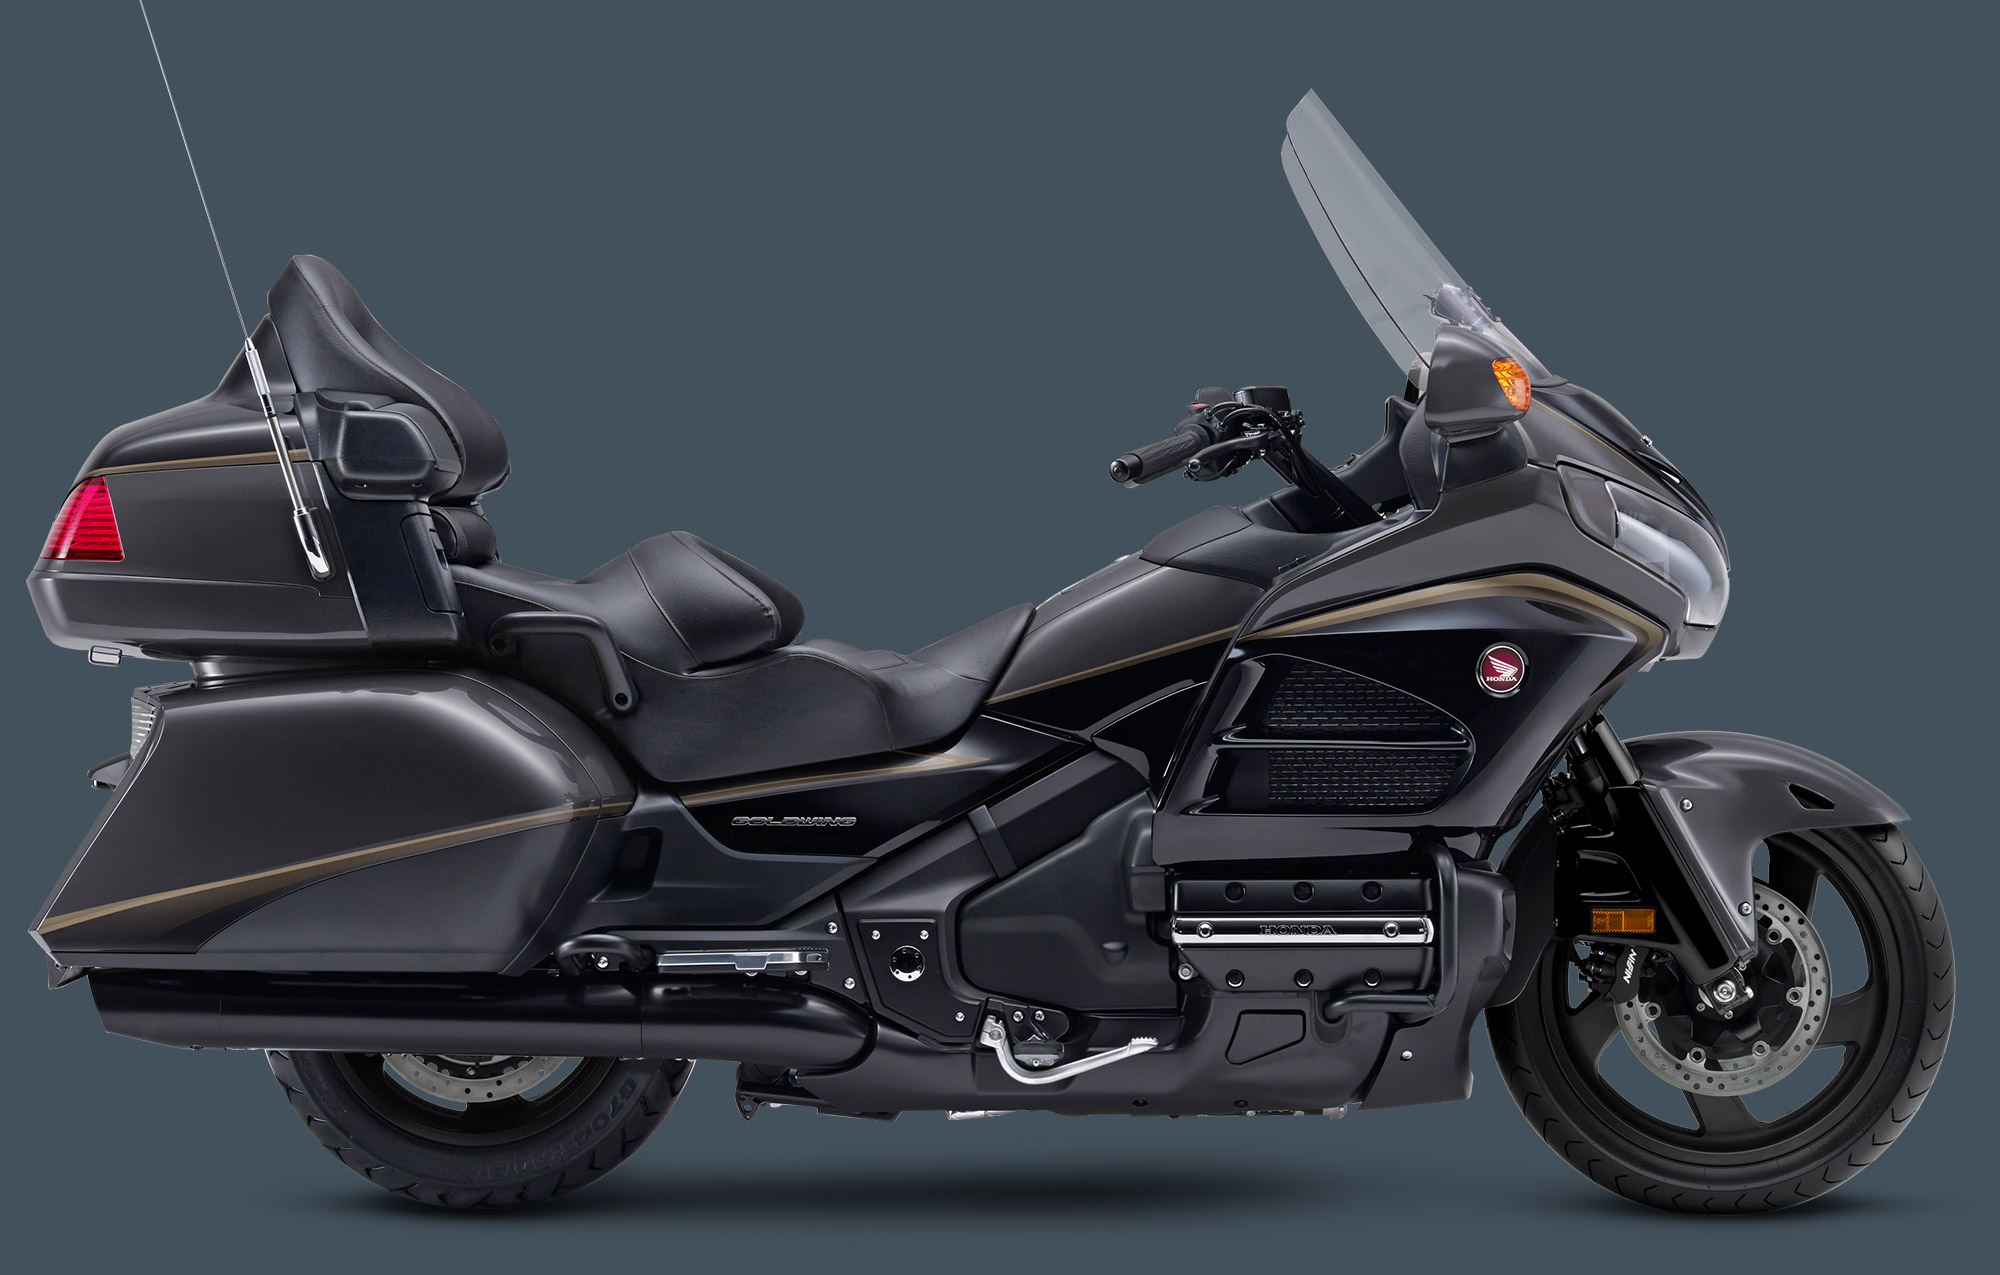 Honda GL 1800 Goldwing 2016. Photo : Honda